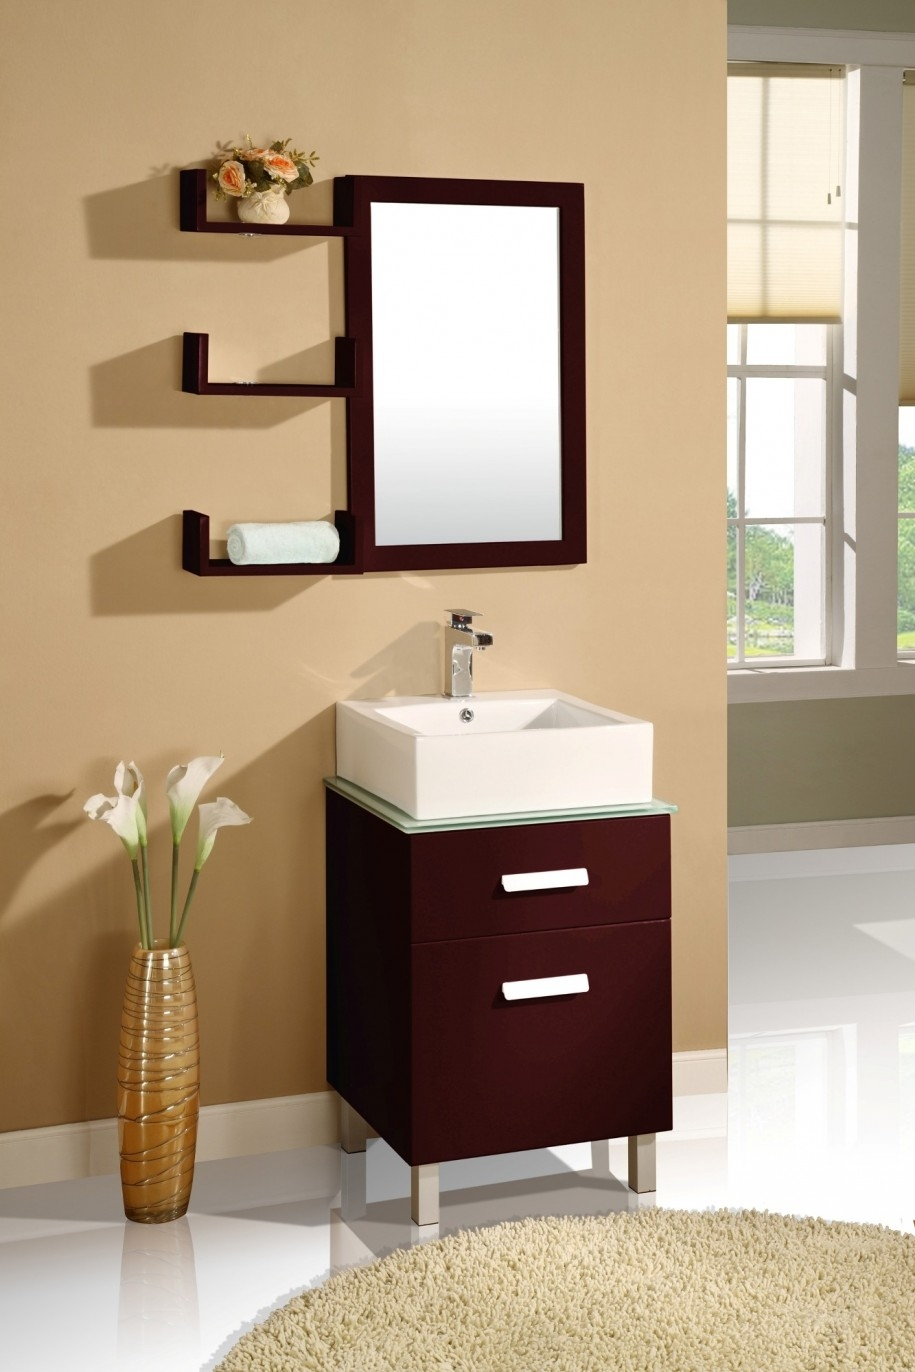 Permalink to Dark Wood Bathroom Cabinet With Mirror